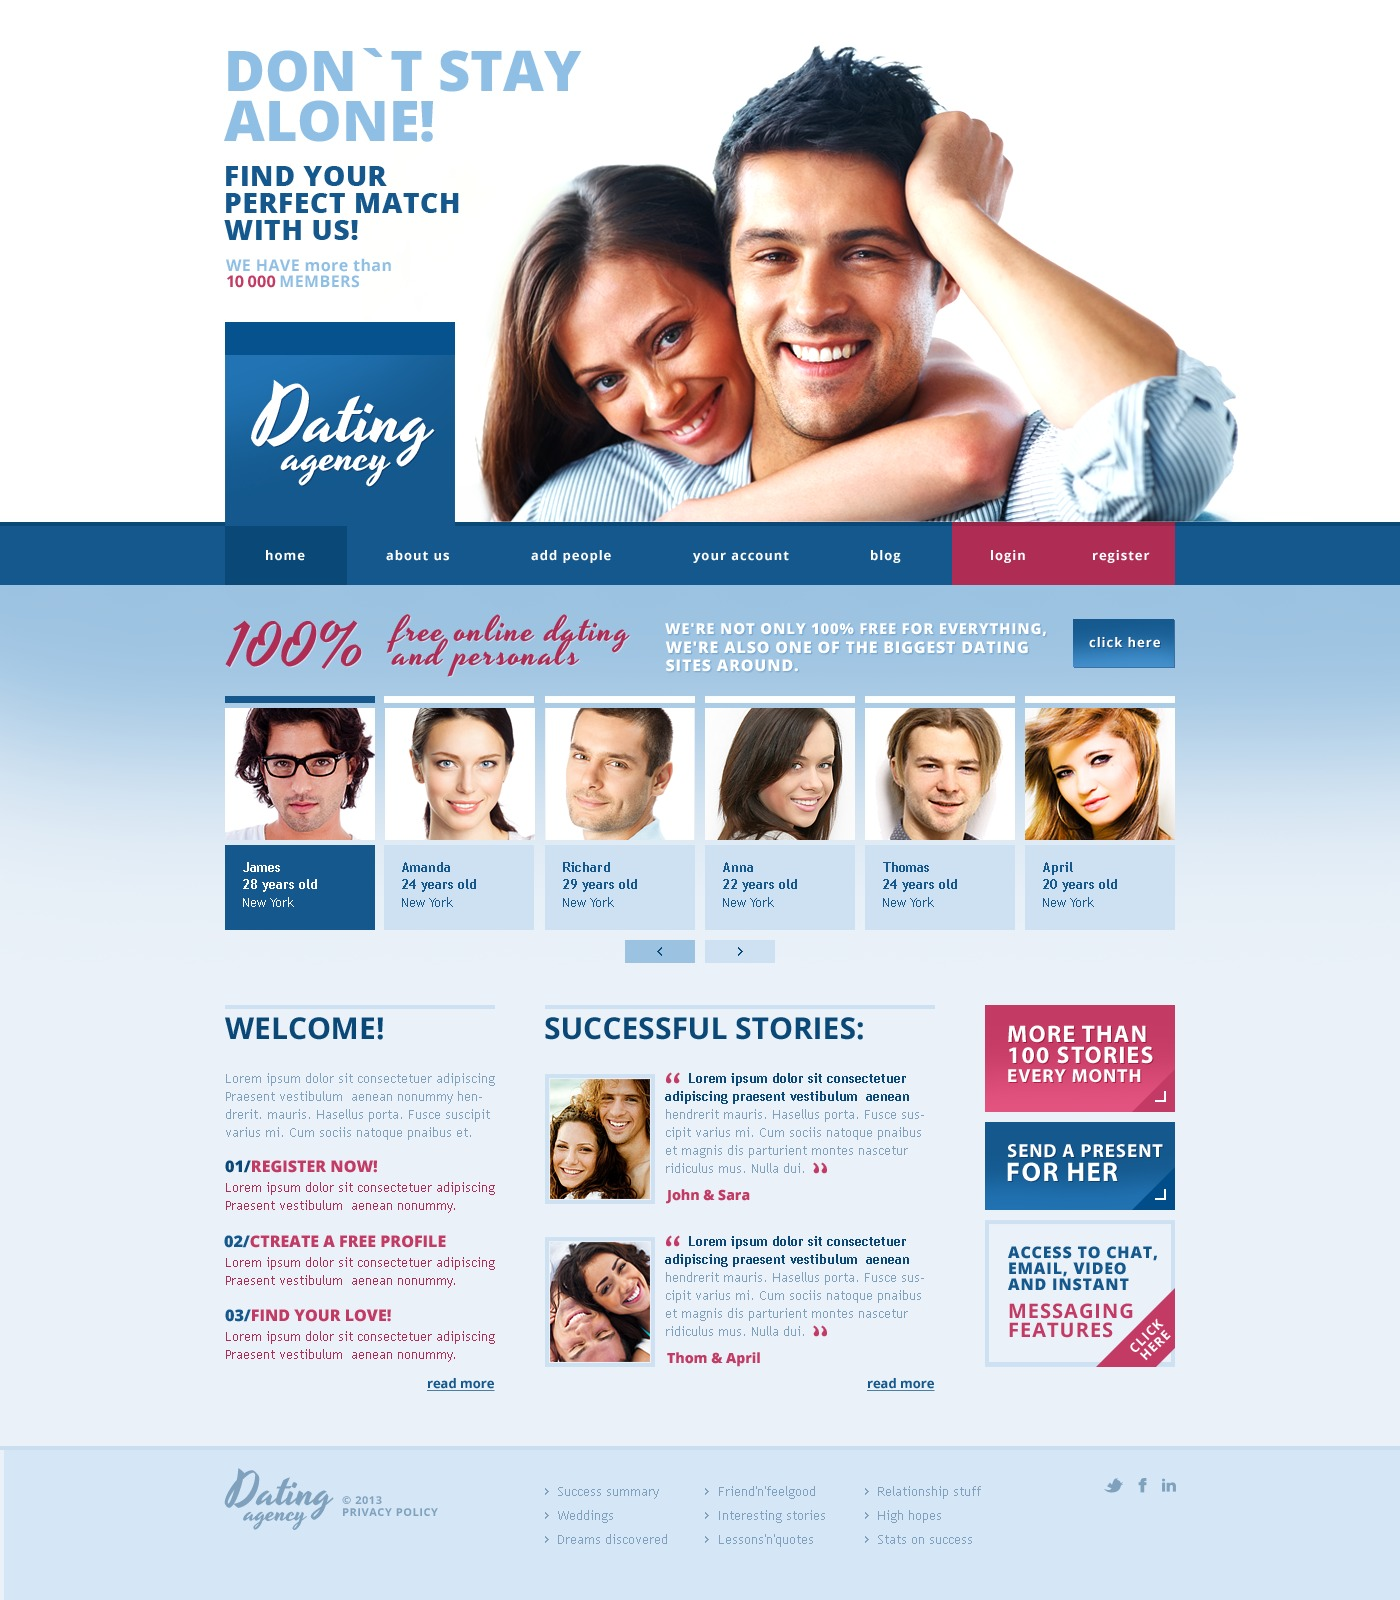 ricerca e-mail dating siti Web